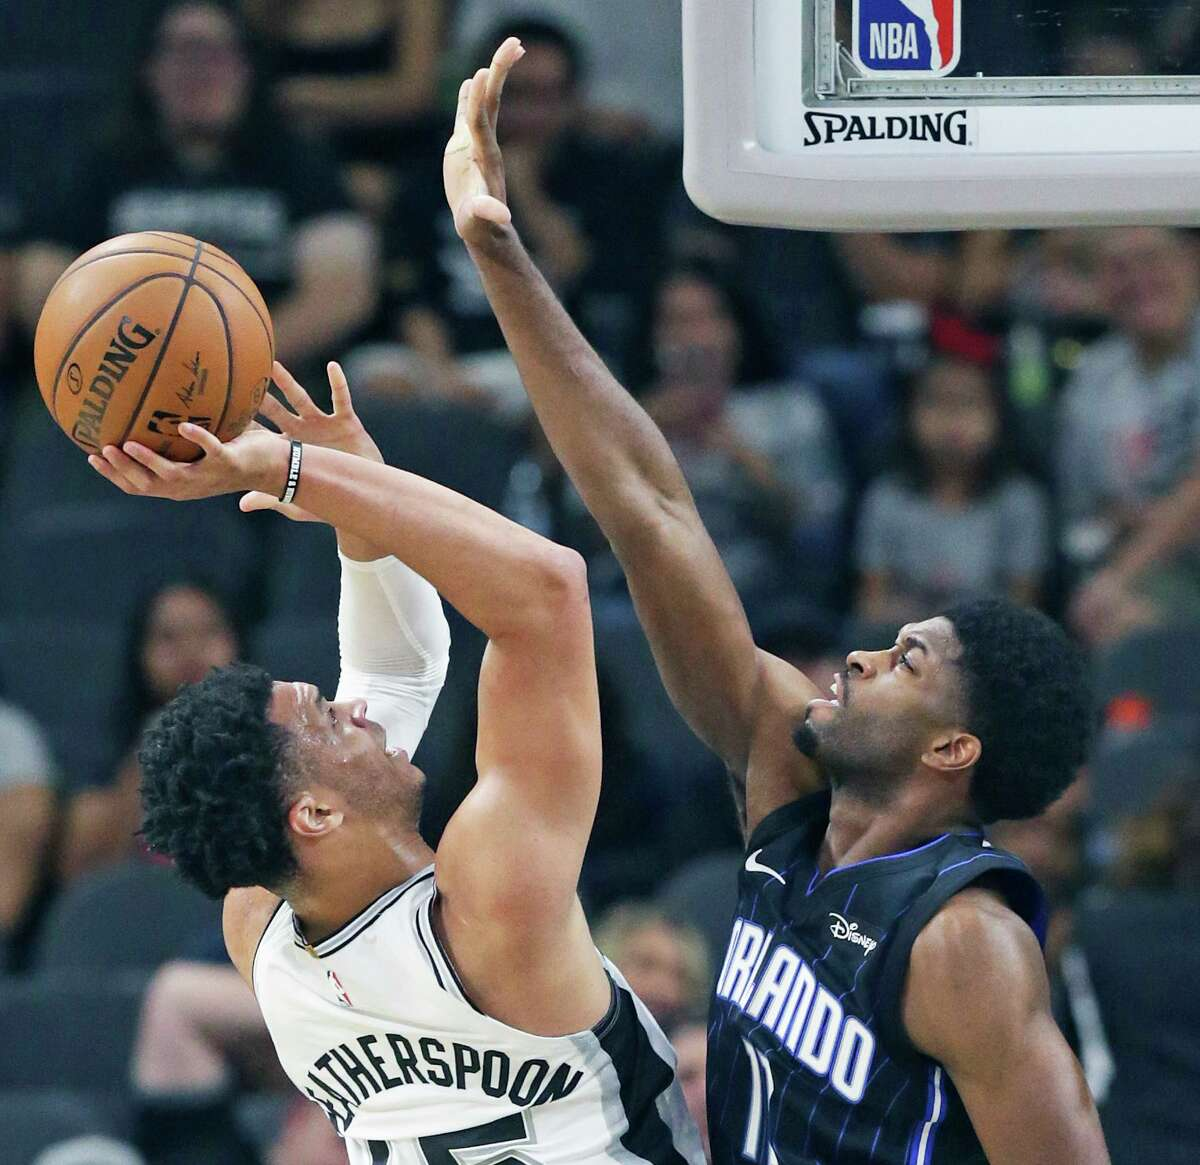 Guard Quinndary Weatherspoon underwent a left knee cartilage debridement Tuesday, the #Spurs announced.